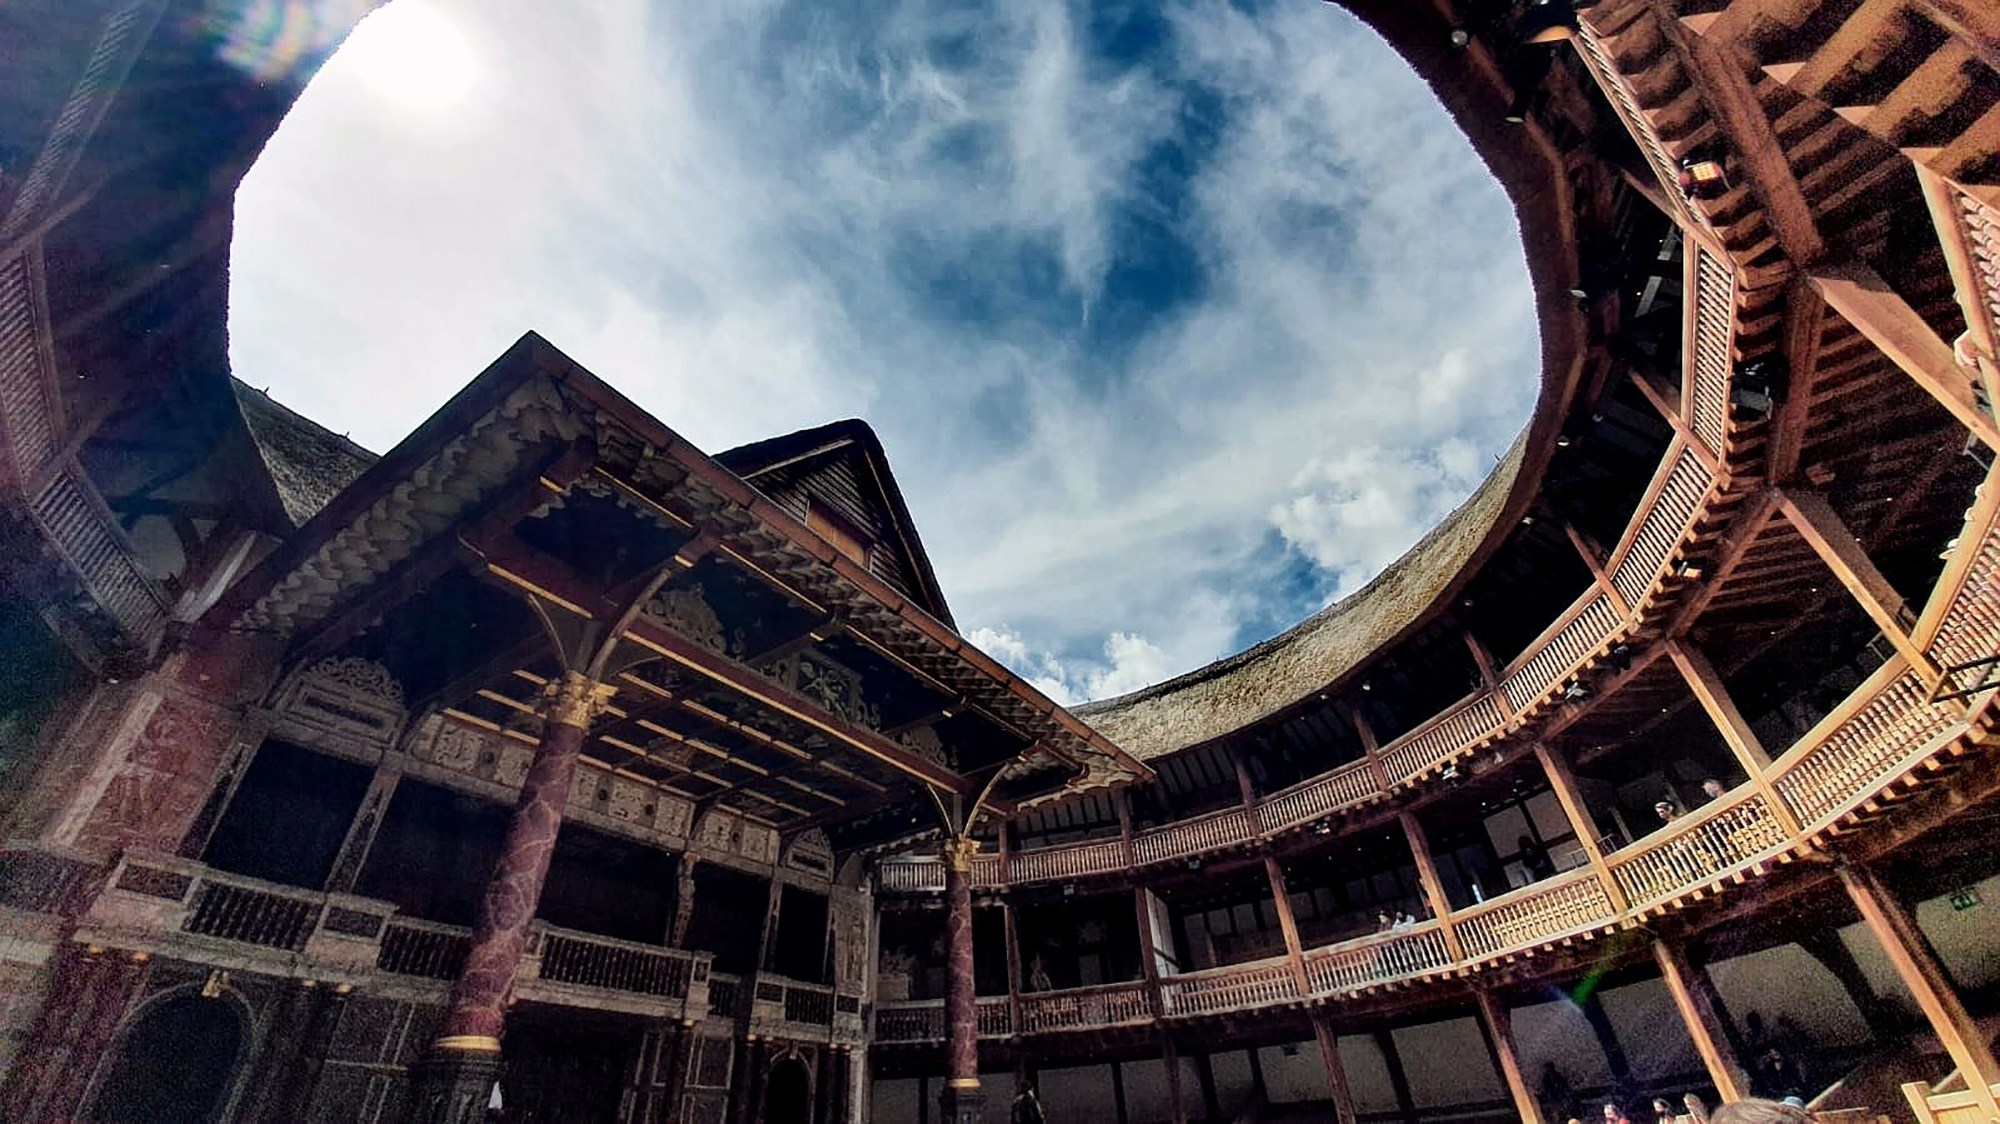 A blue sky streaked with wisps of white cloud above the circular timbre structure of the Globe Theatre.